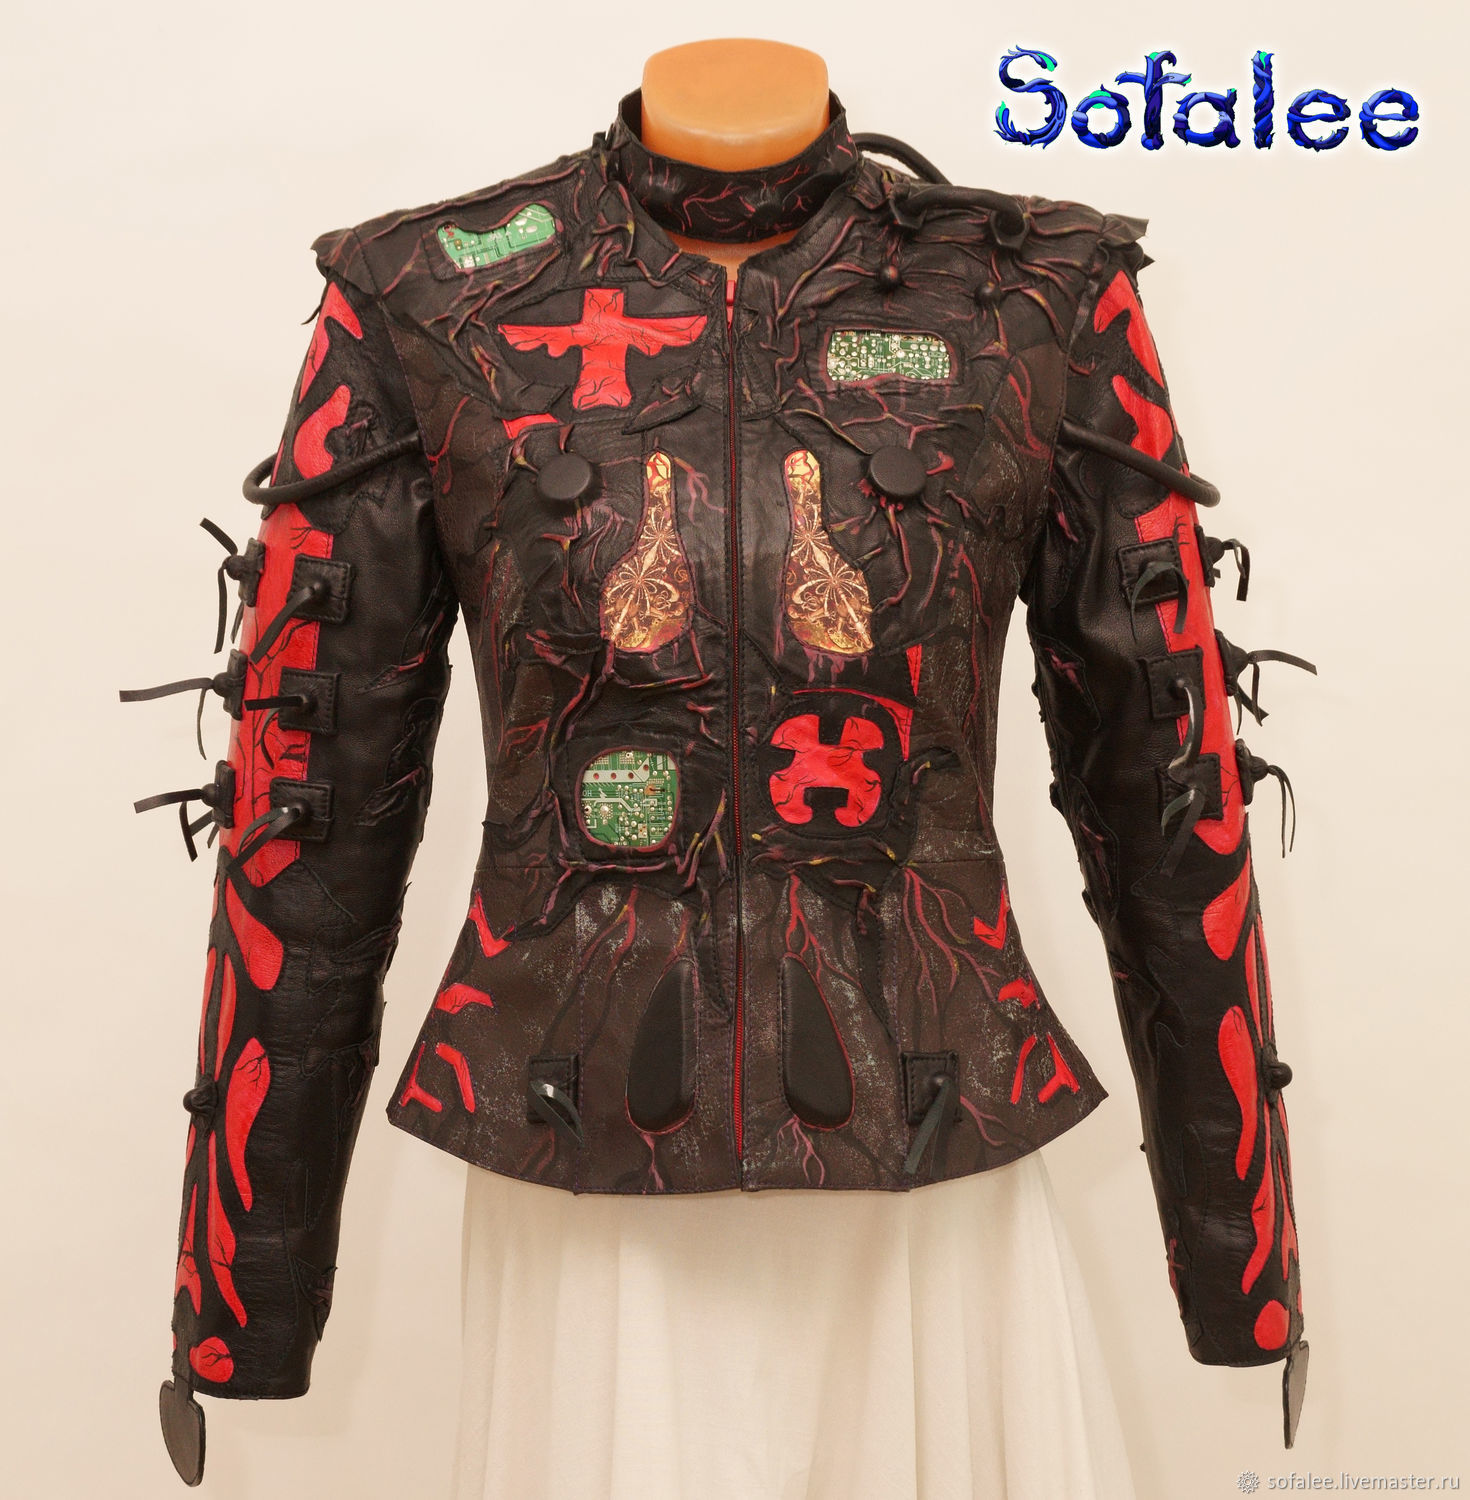 Exclusive women's genuine leather jacket with choker collar, Outerwear Jackets, Moscow,  Фото №1